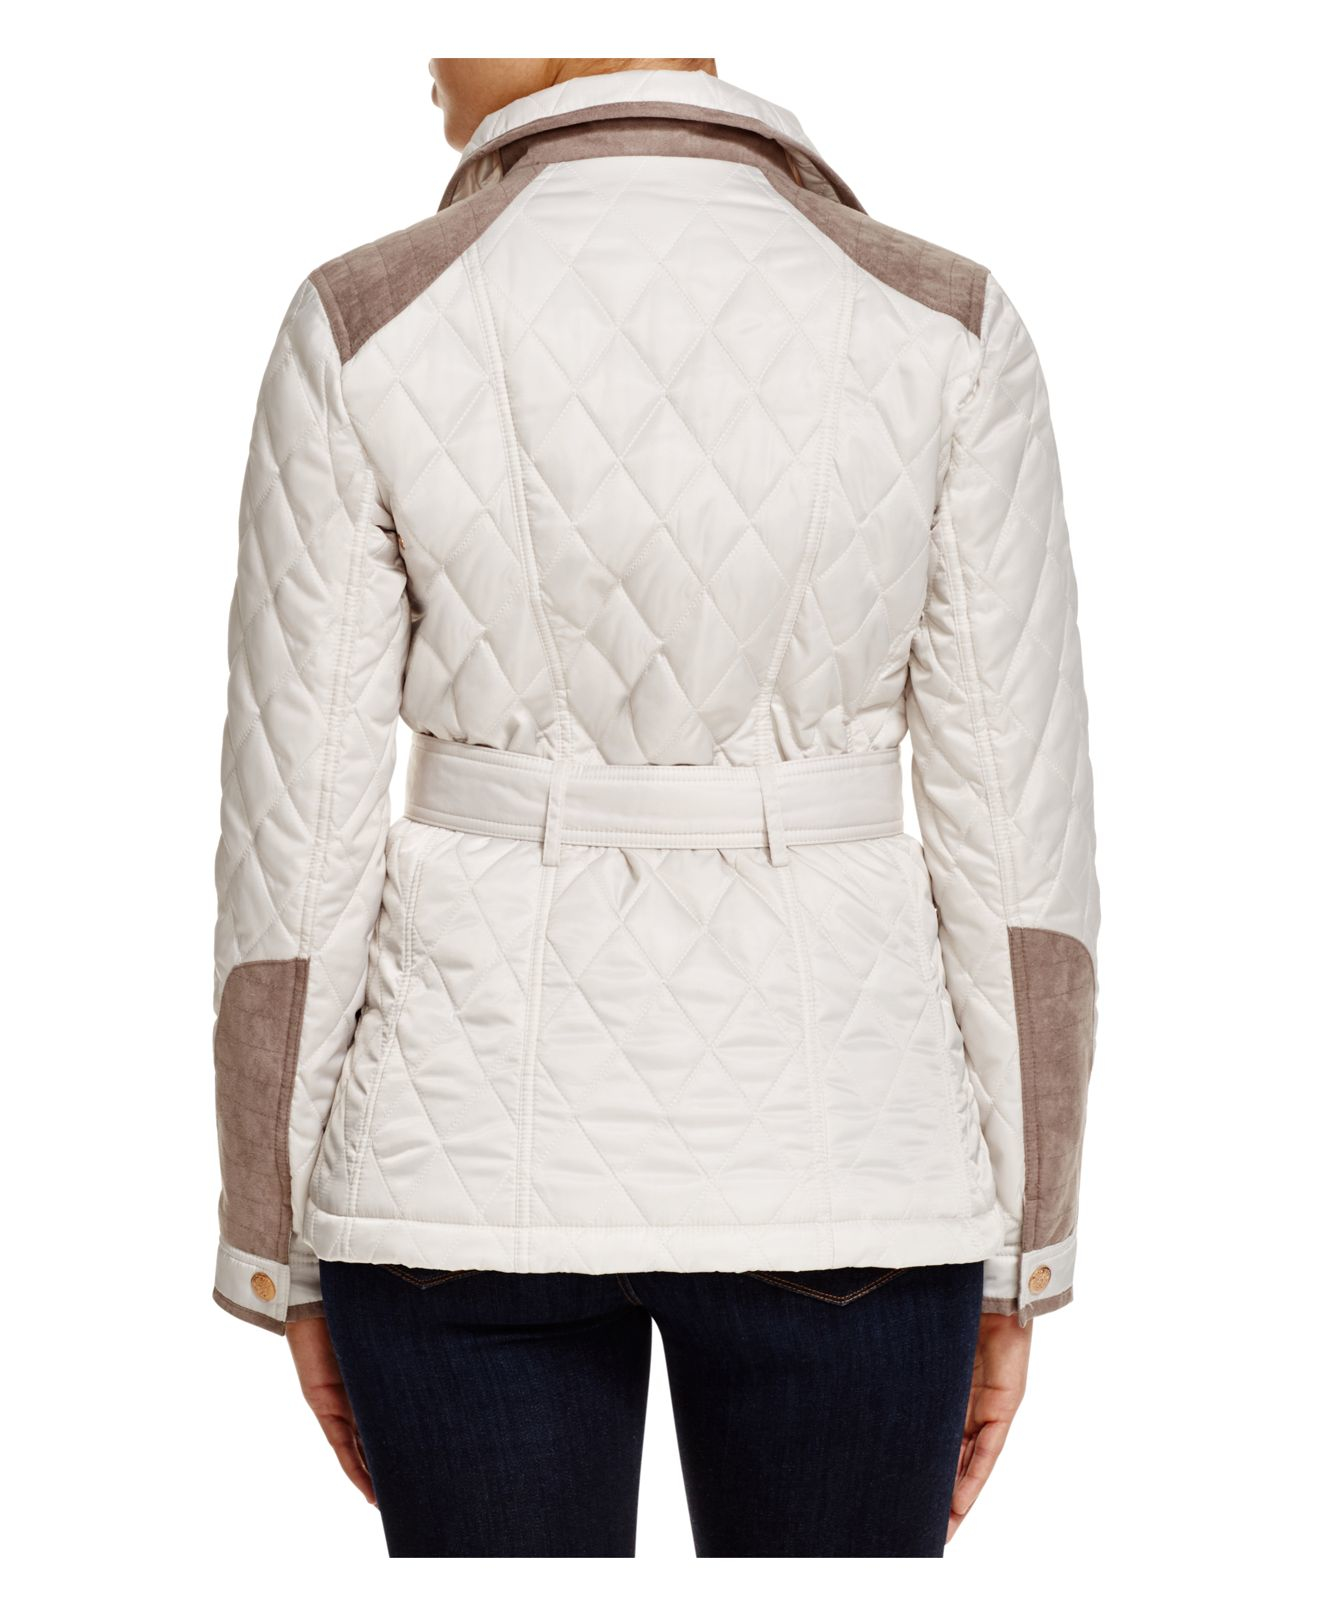 Lyst Vince Camuto Belted Diamond Quilted Jacket In White